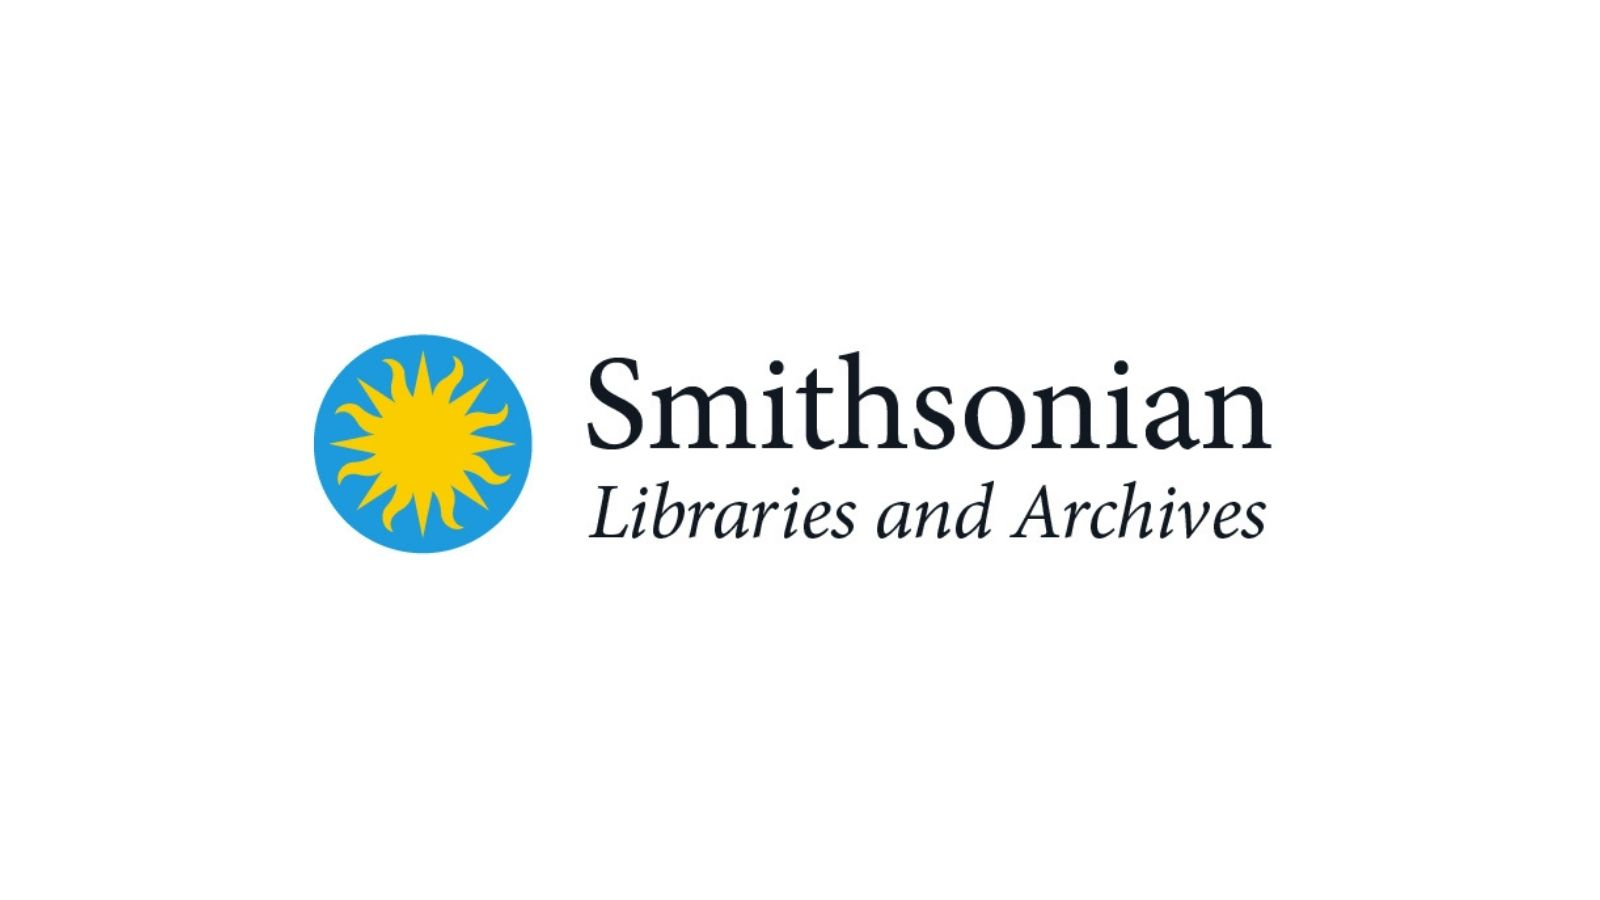 Smithsonian Libraries and Archives logo